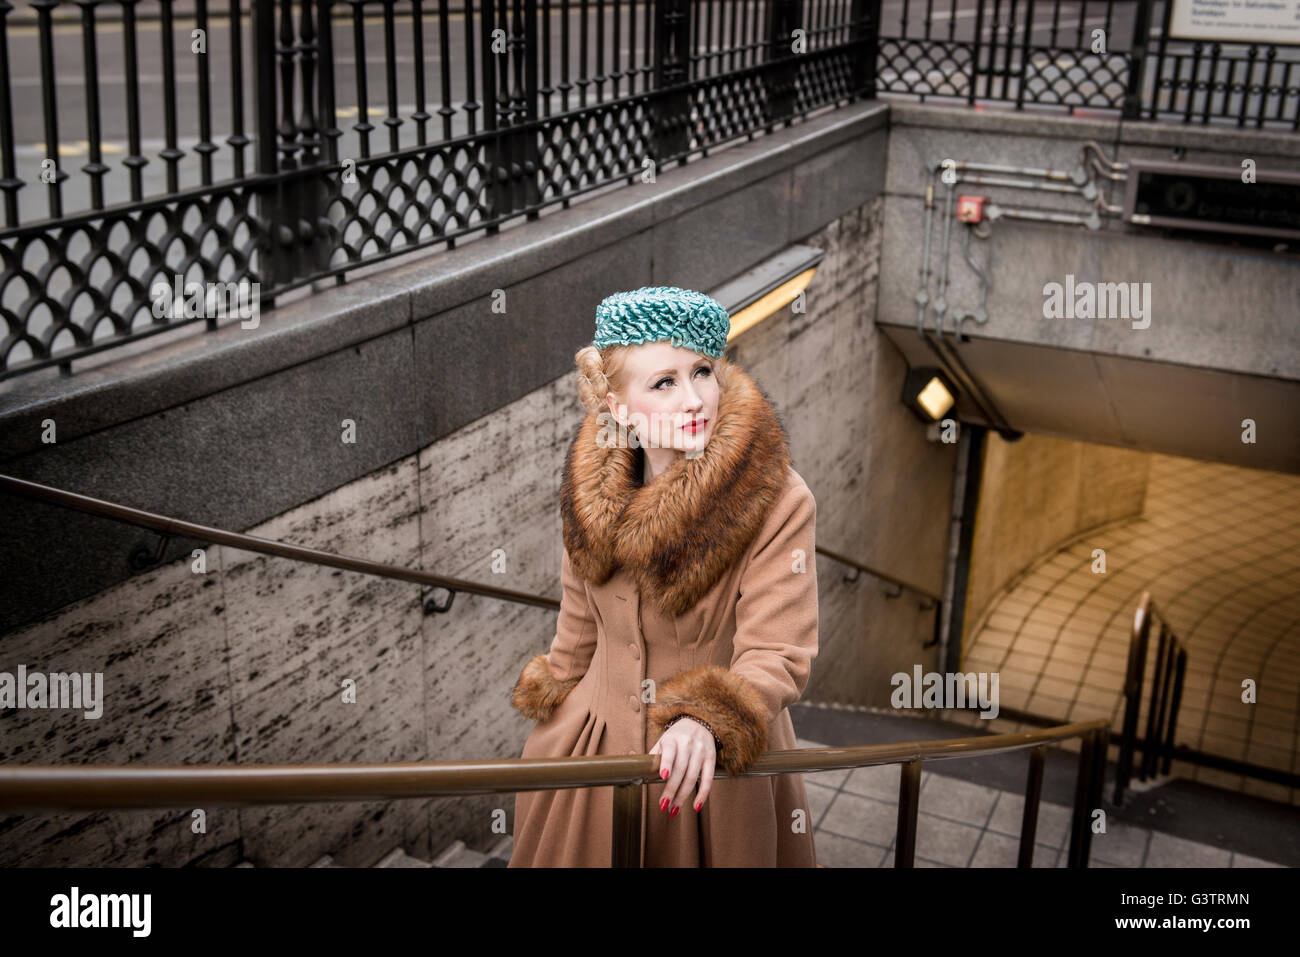 A stylish young woman dressed in 1930s style clothing walking up stairs from Piccadilly Circus tube station. - Stock Image